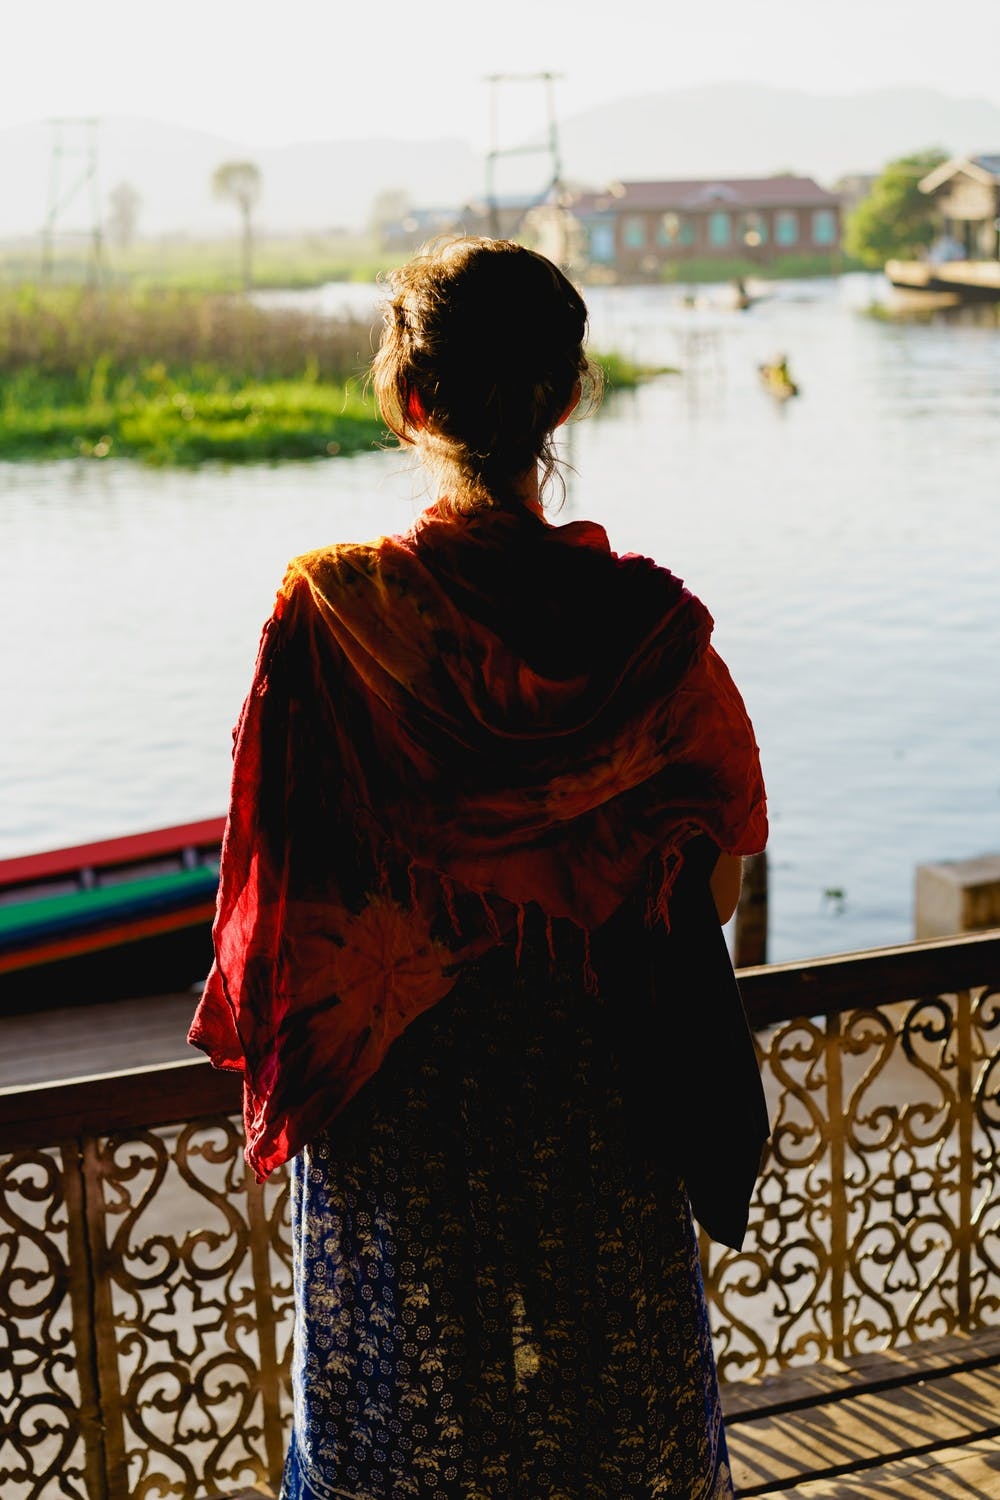 Girl wearing a red sarong looking at the waterway roads of the lake communities around Inle Lake Myanmar